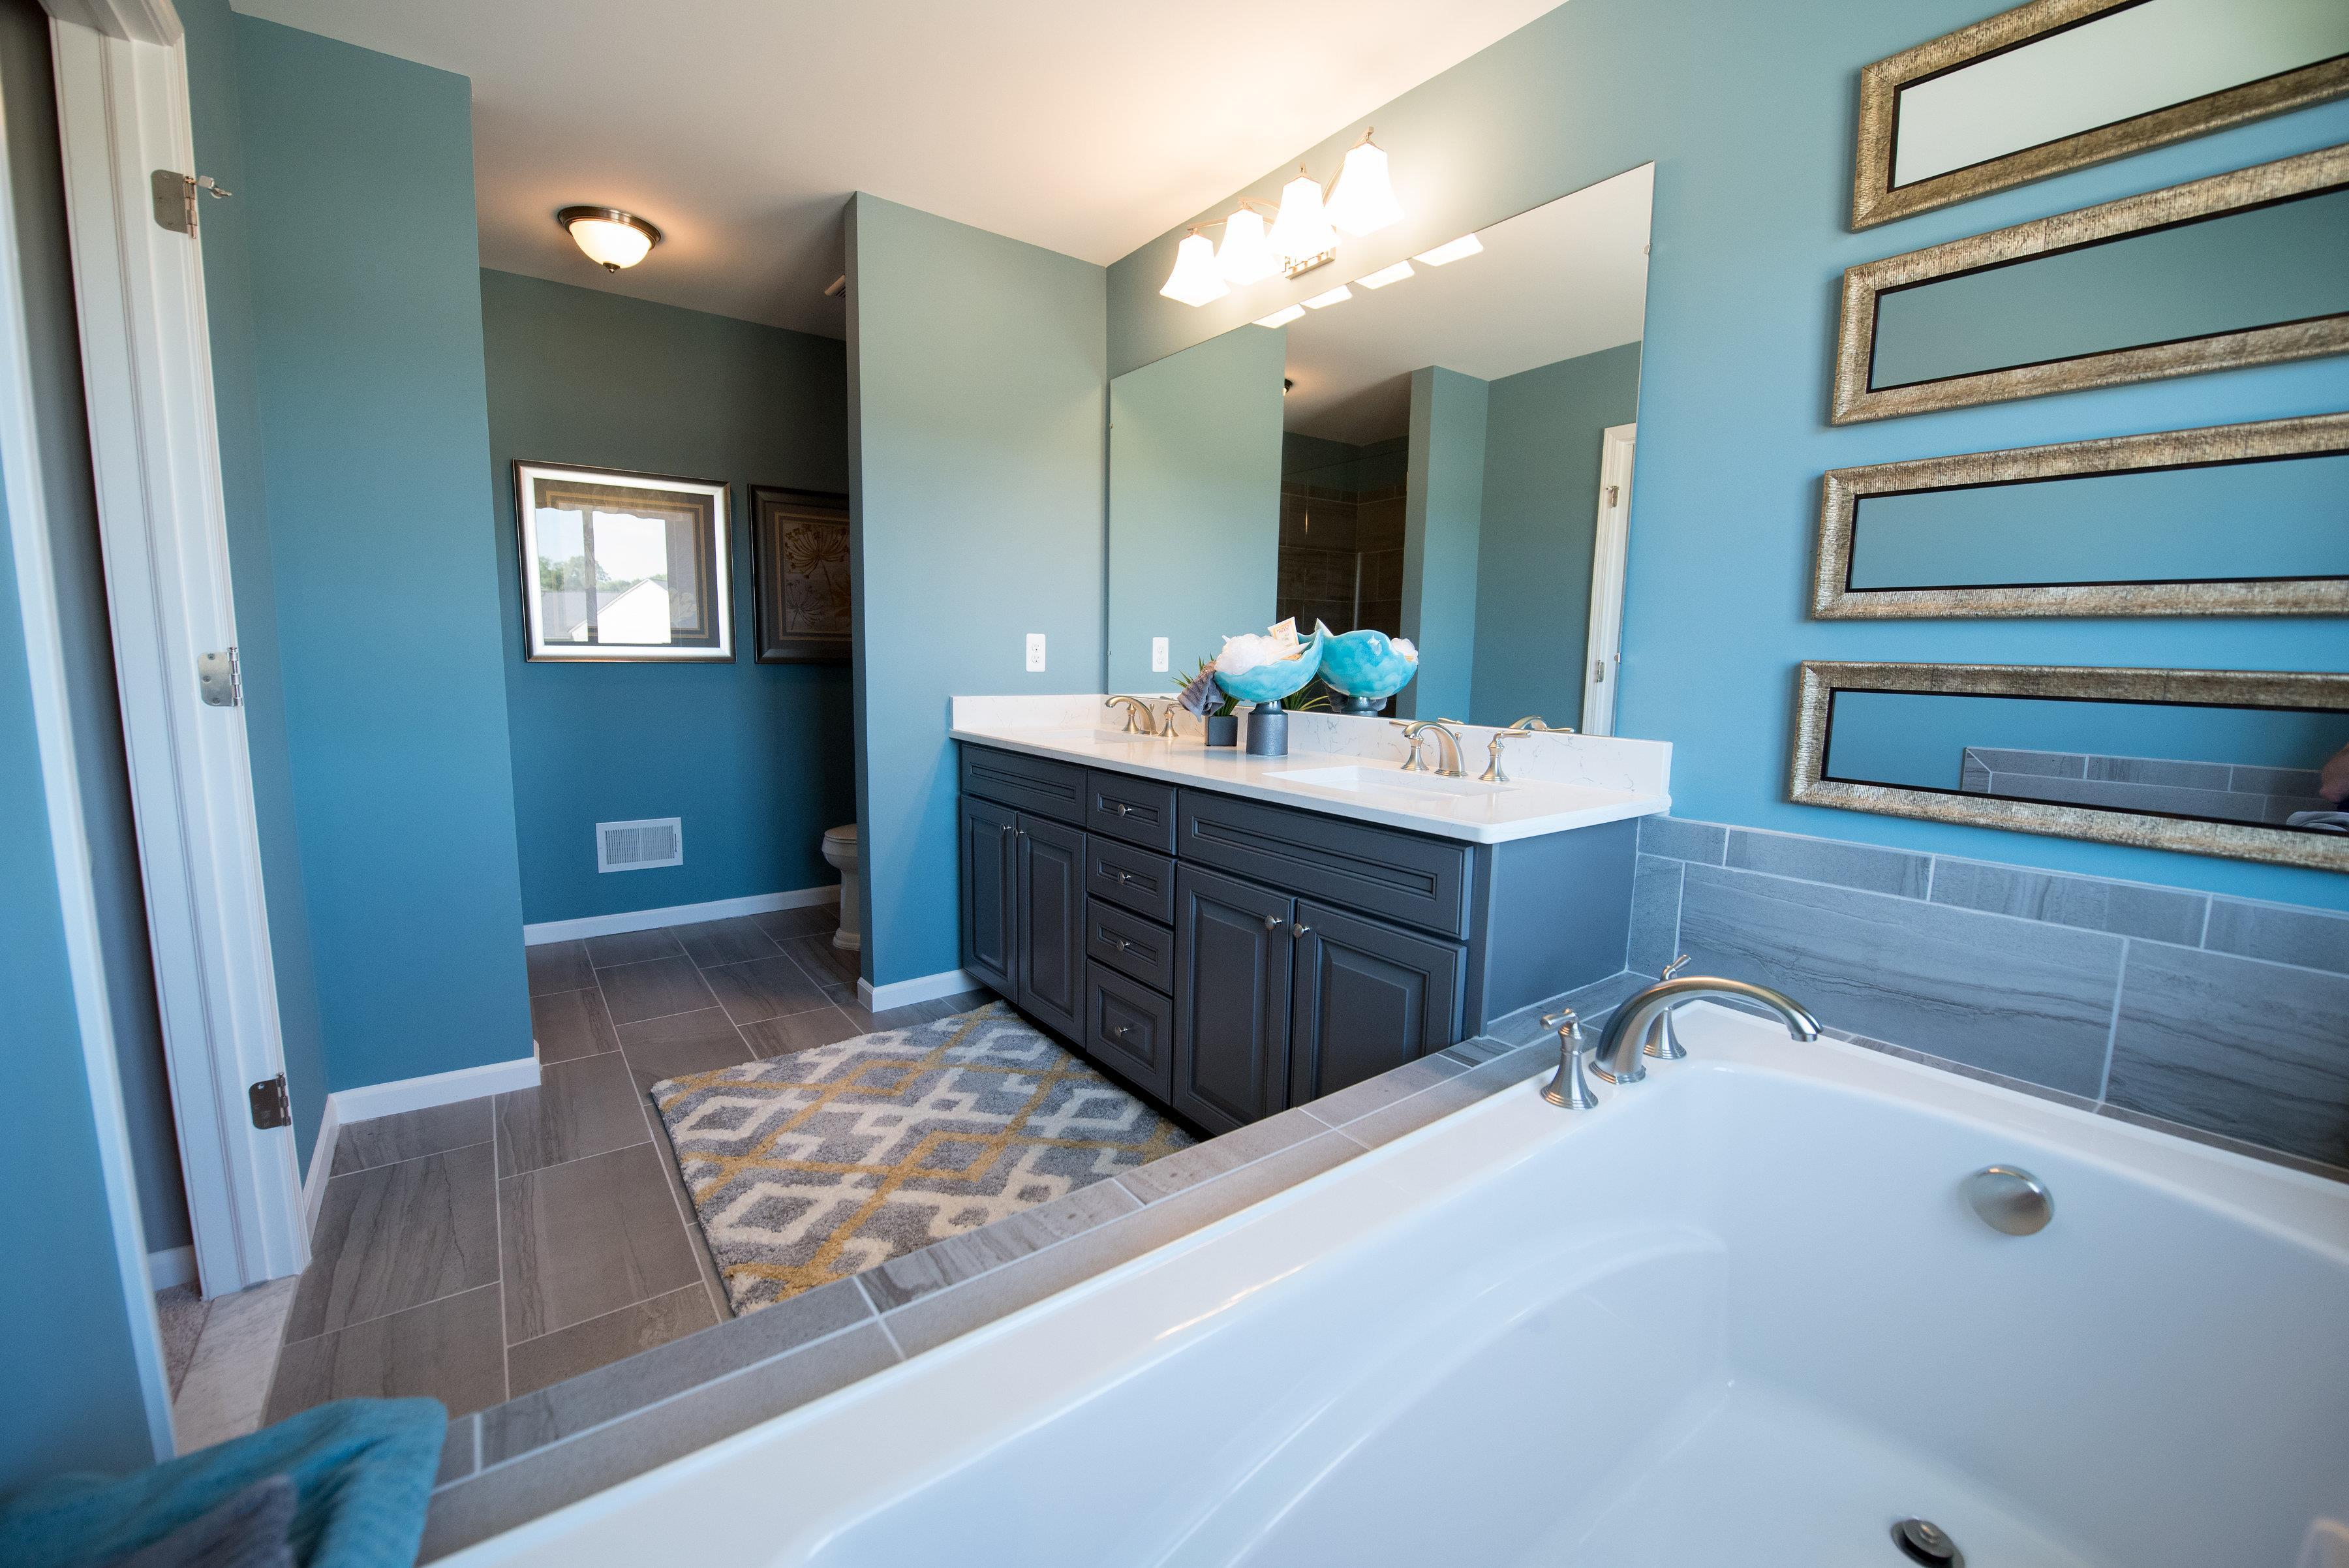 Bathroom featured in the Remington By Singh Homes in Detroit, MI